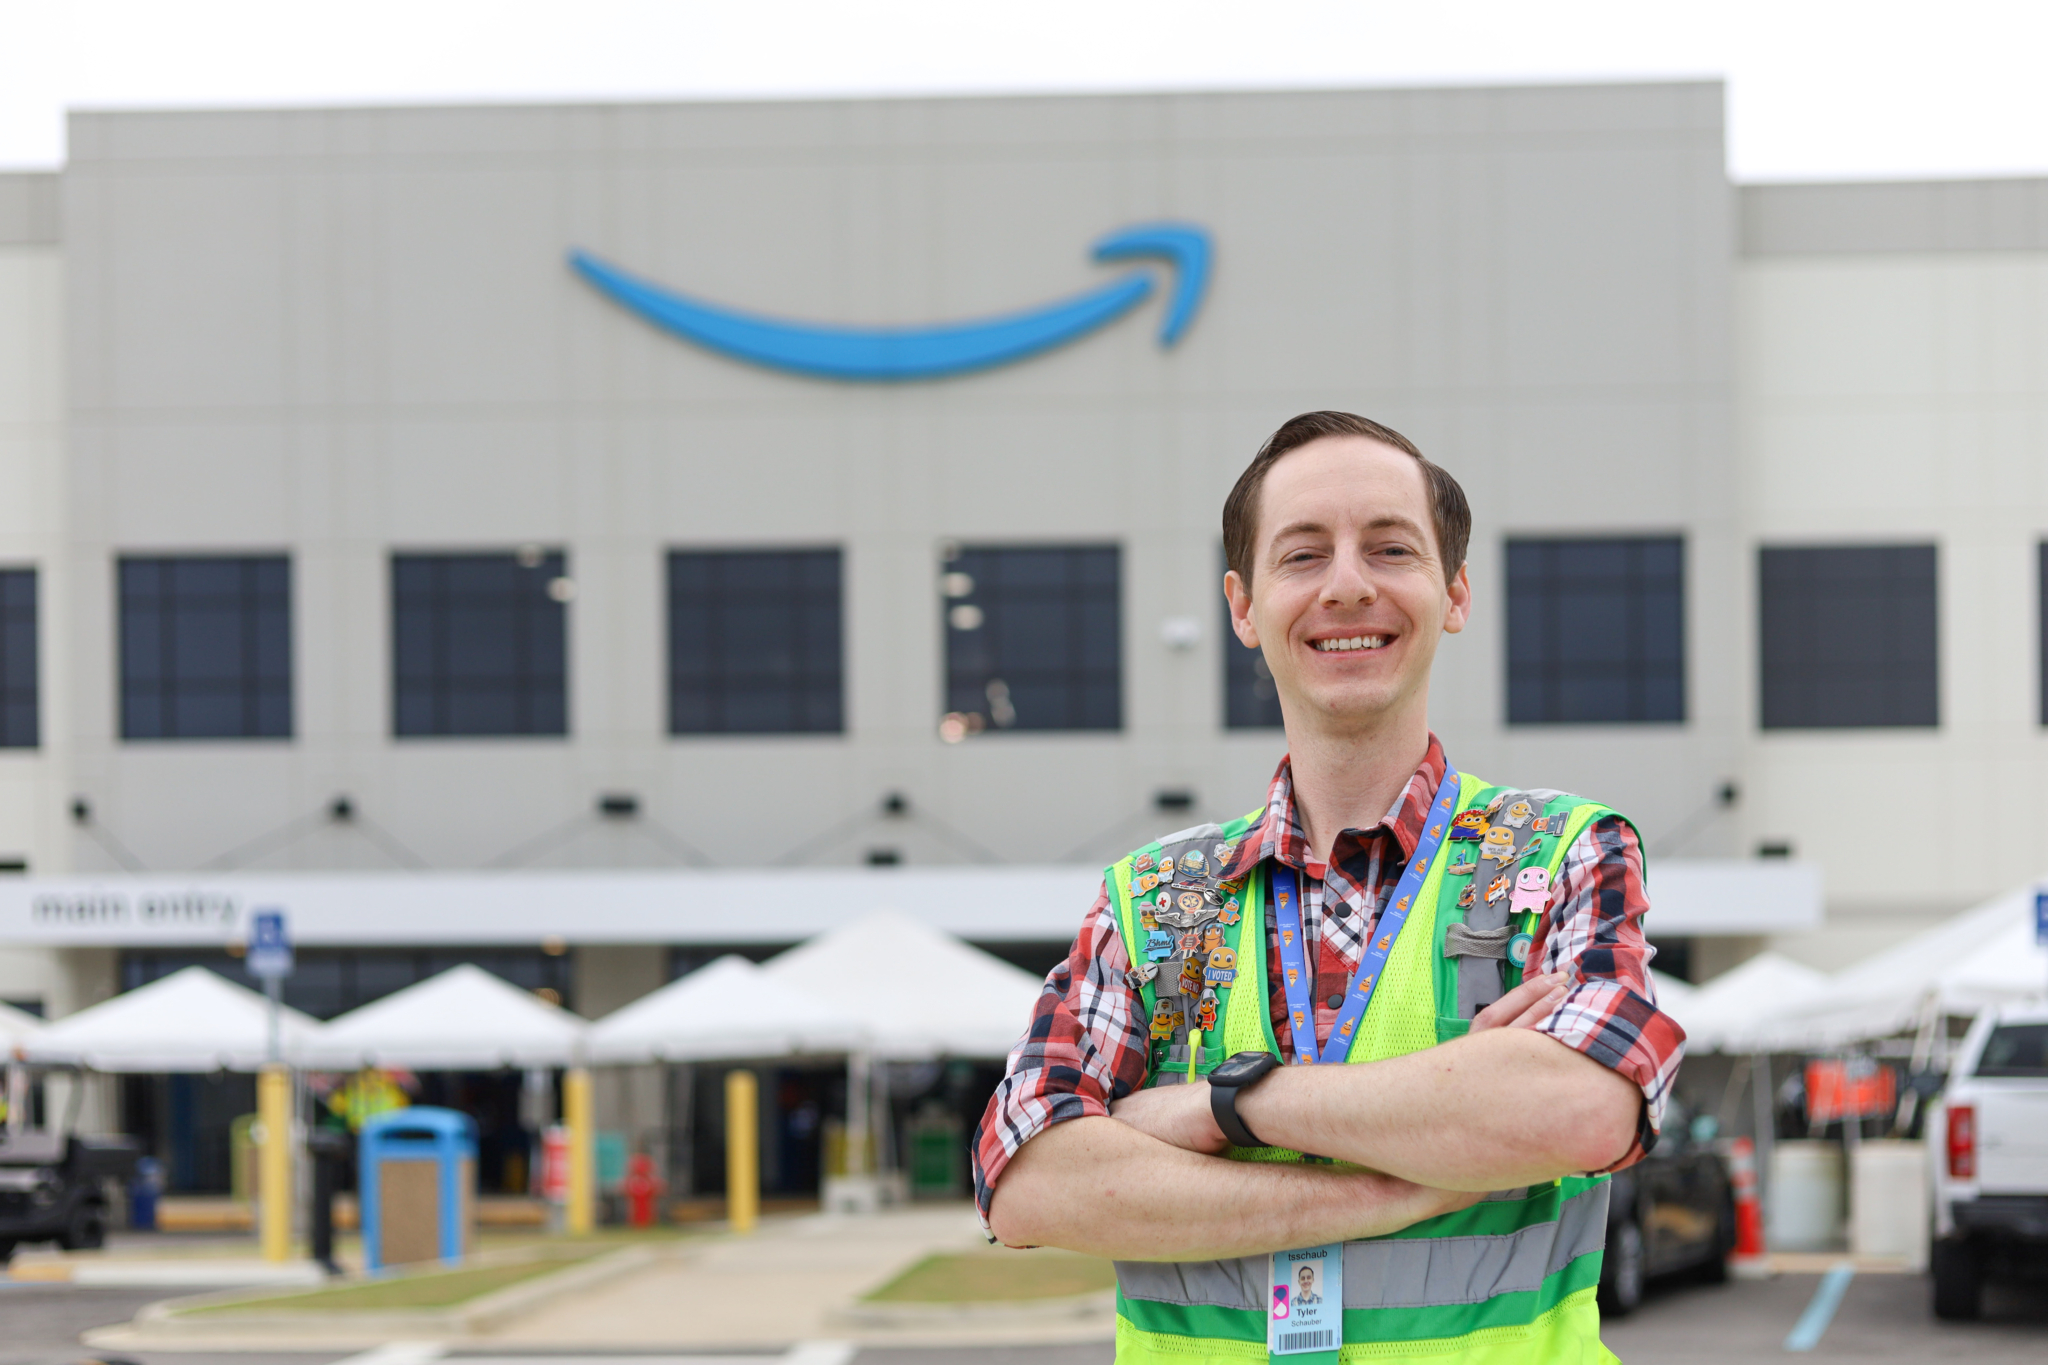 5 tips for keeping safe at work from Amazon medical rep. Tyler Schauber